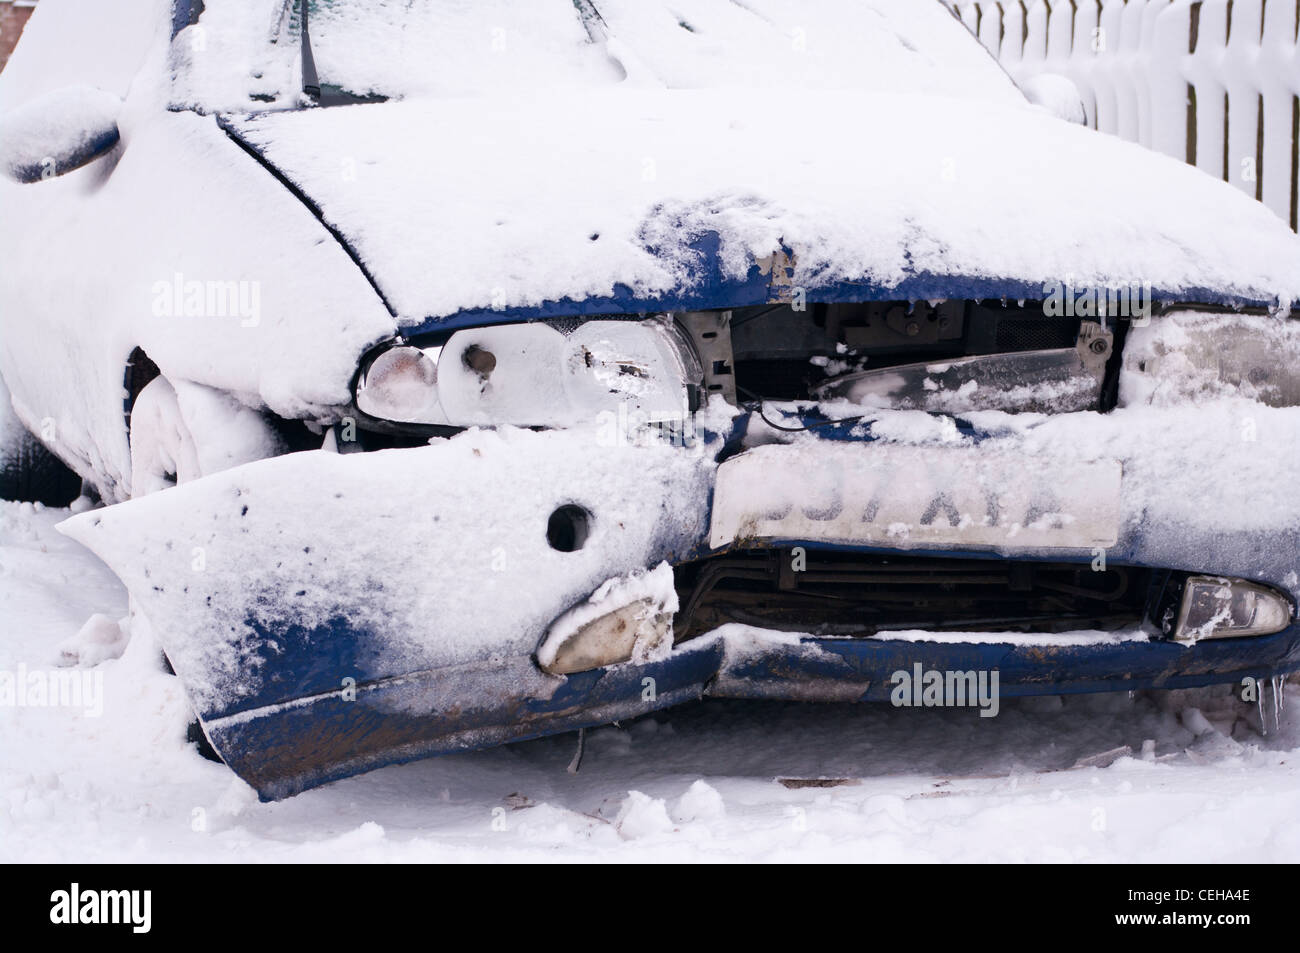 Damaged Dented Broken Down Car Vehicle After an Accident In The Snow Winter UK - Stock Image